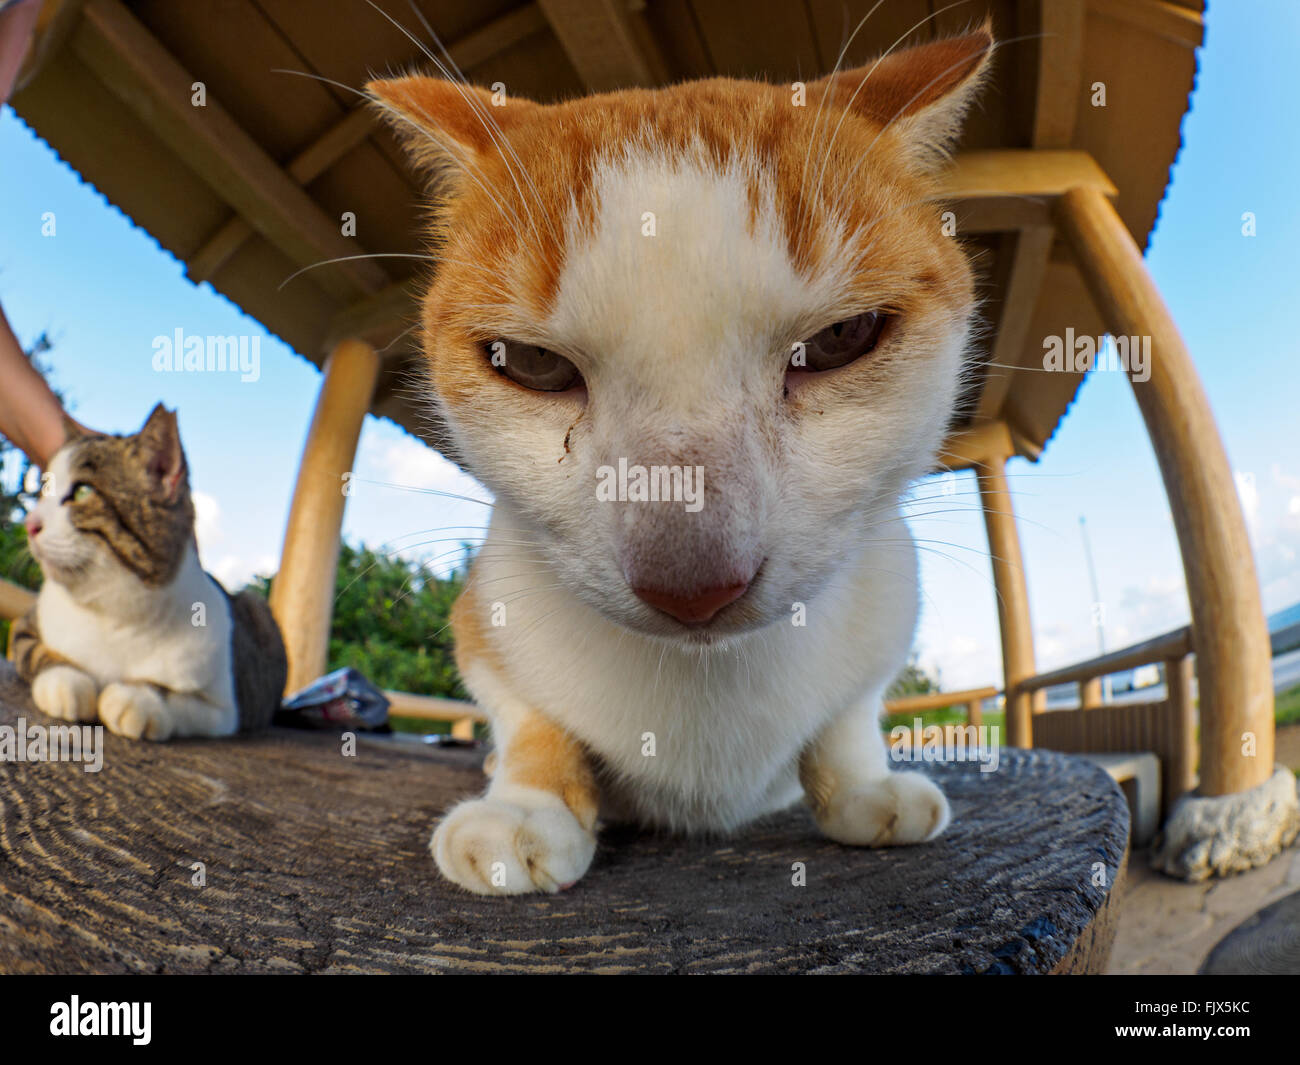 Close-Up Portrait Of Cat Sitting On Wooden Seat Outdoors - Stock Image